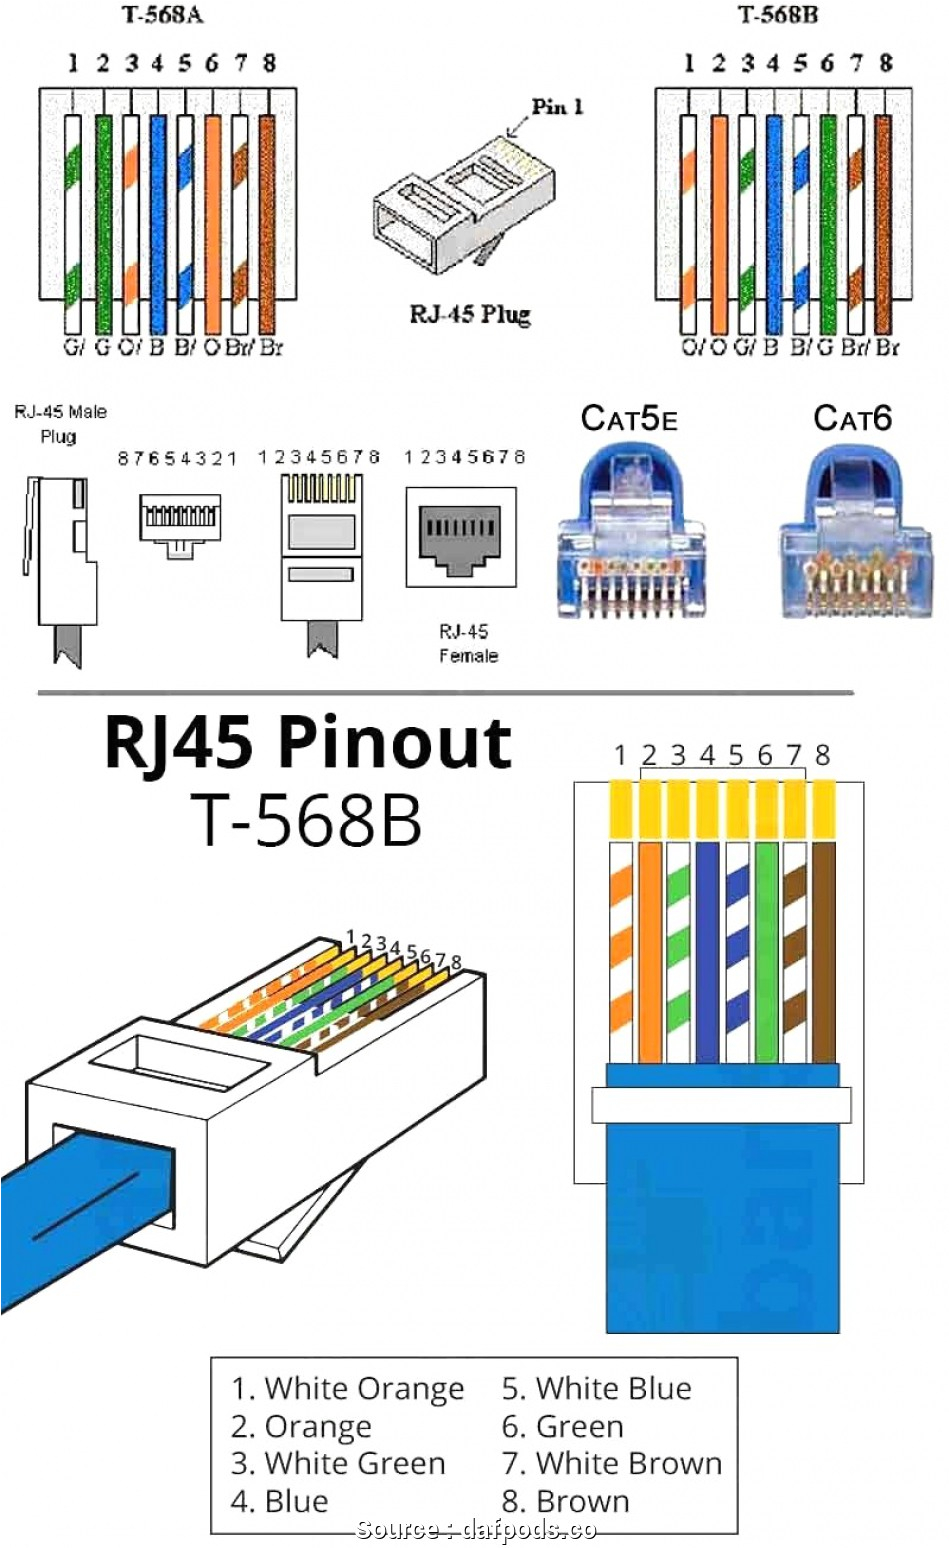 ethernet cable wiring diagram cat6 wiring diagram gigabit ethernet valid cable of network 5e pinout diagram cat5e ethernet cable wiring diagram 43 53544 jpg